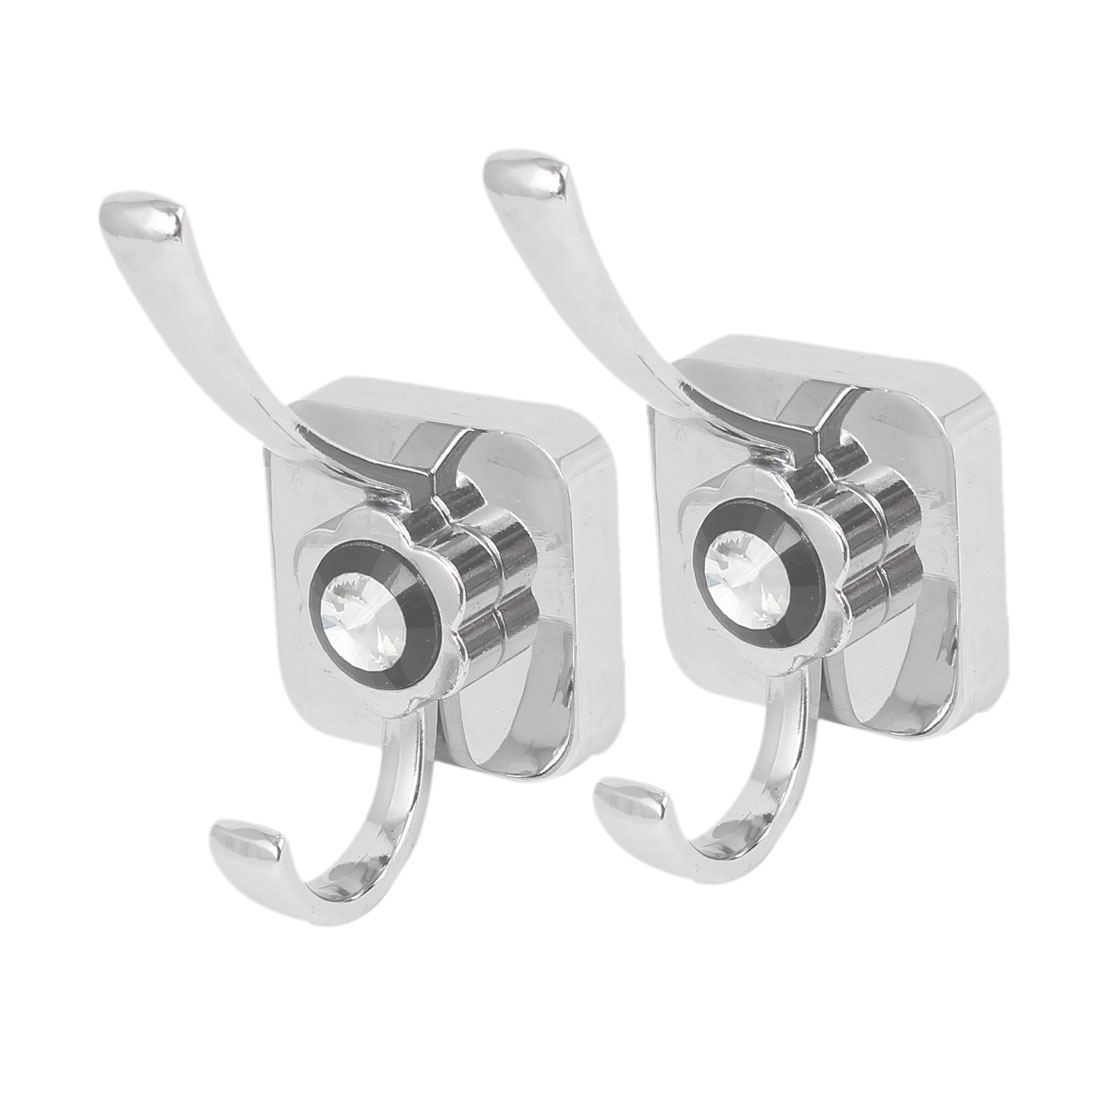 Wall Mounted Square Base Double Hook Hanger 2PCS for Clothes Robe Hat